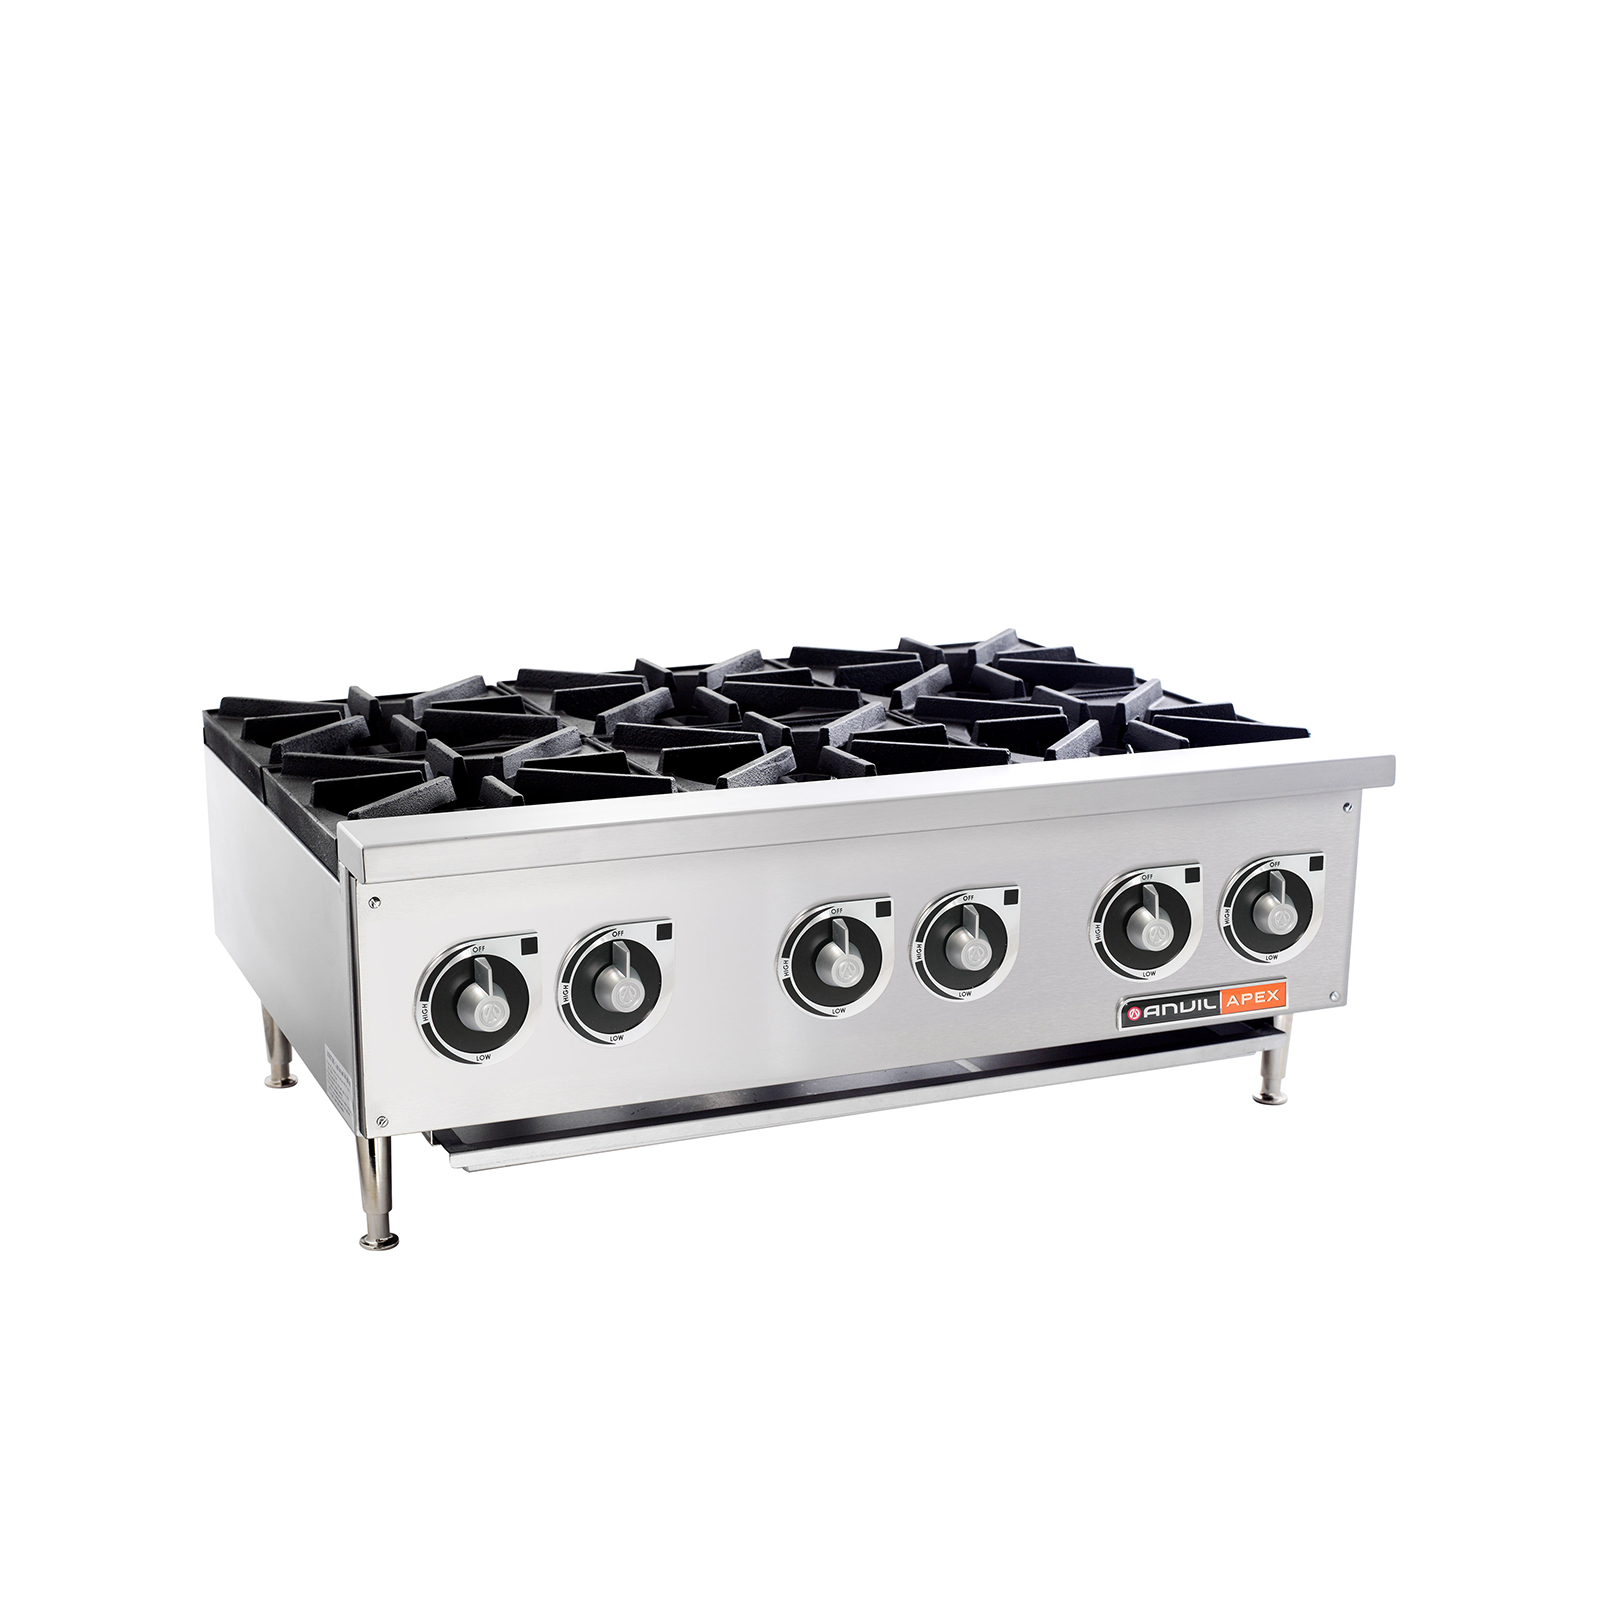 6 Burner Gas Stove By Anvil Core Catering